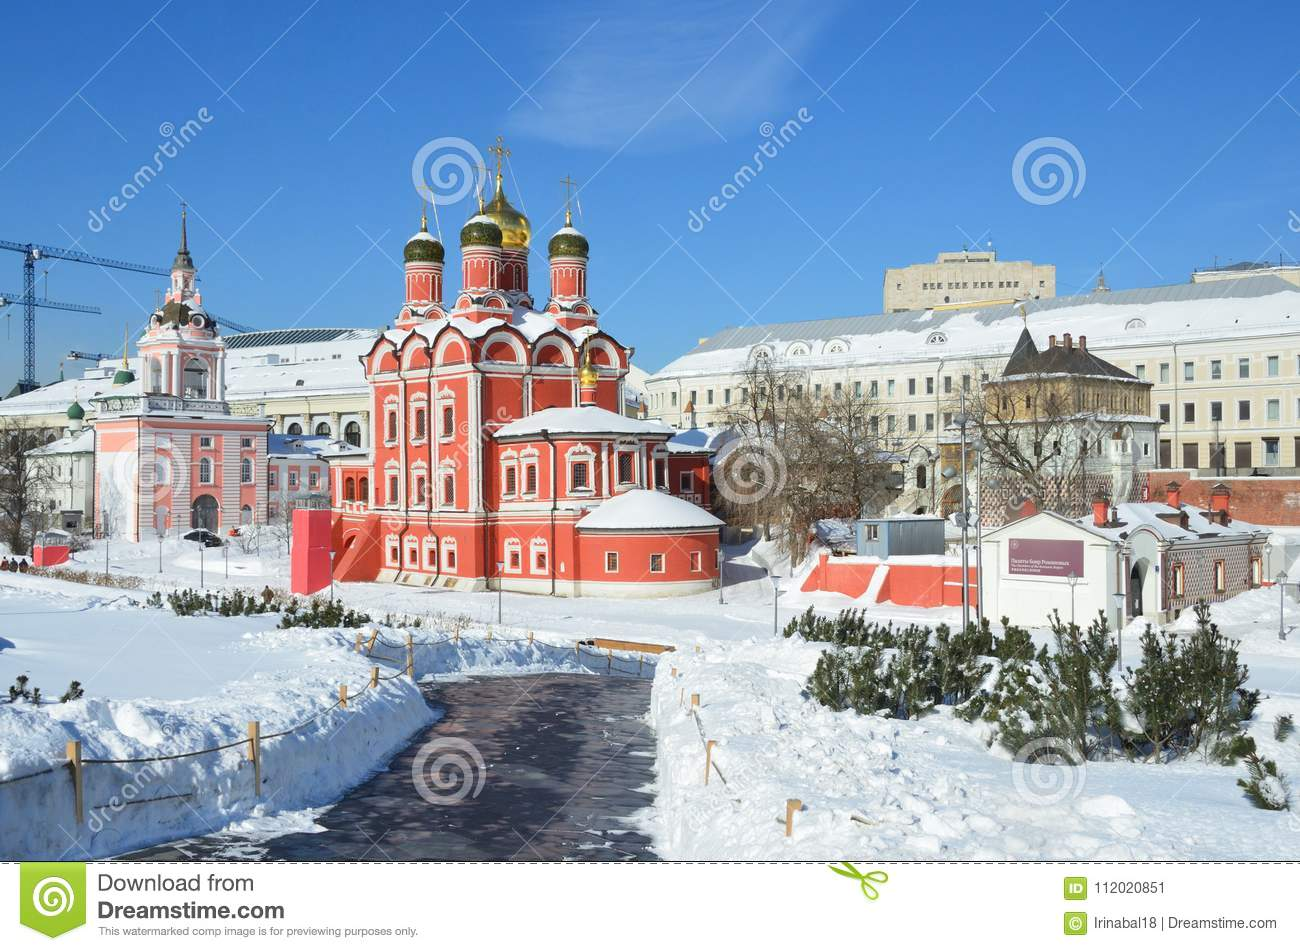 Noscow, Russia, March, 06, 2018. Znamensky monastery and Chambers of Romanov boyars in sunny spring day on Varvarka street